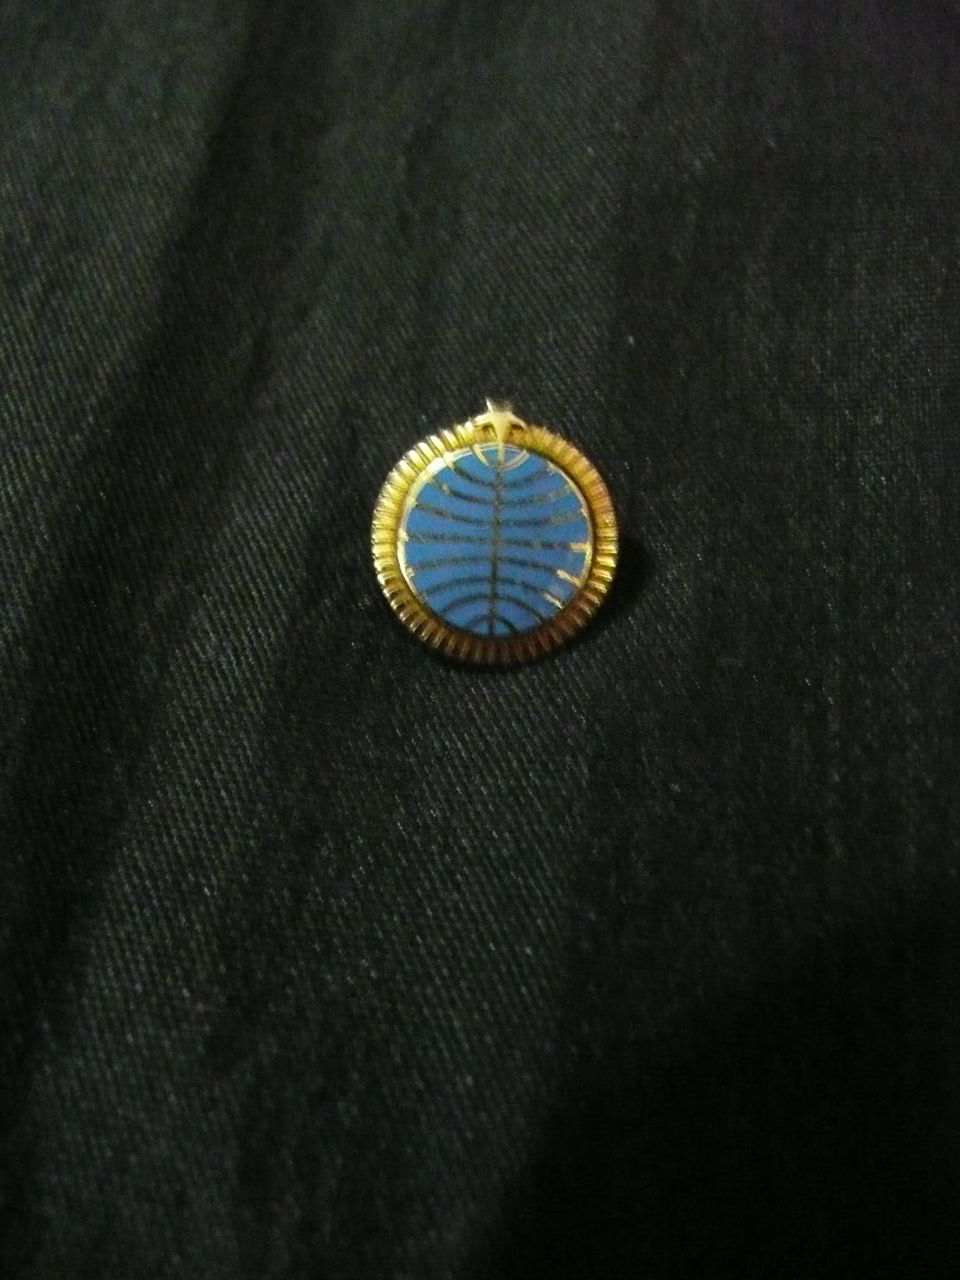 PAN AM 5 Year Staff Service Lapel Pin Circa 1960's